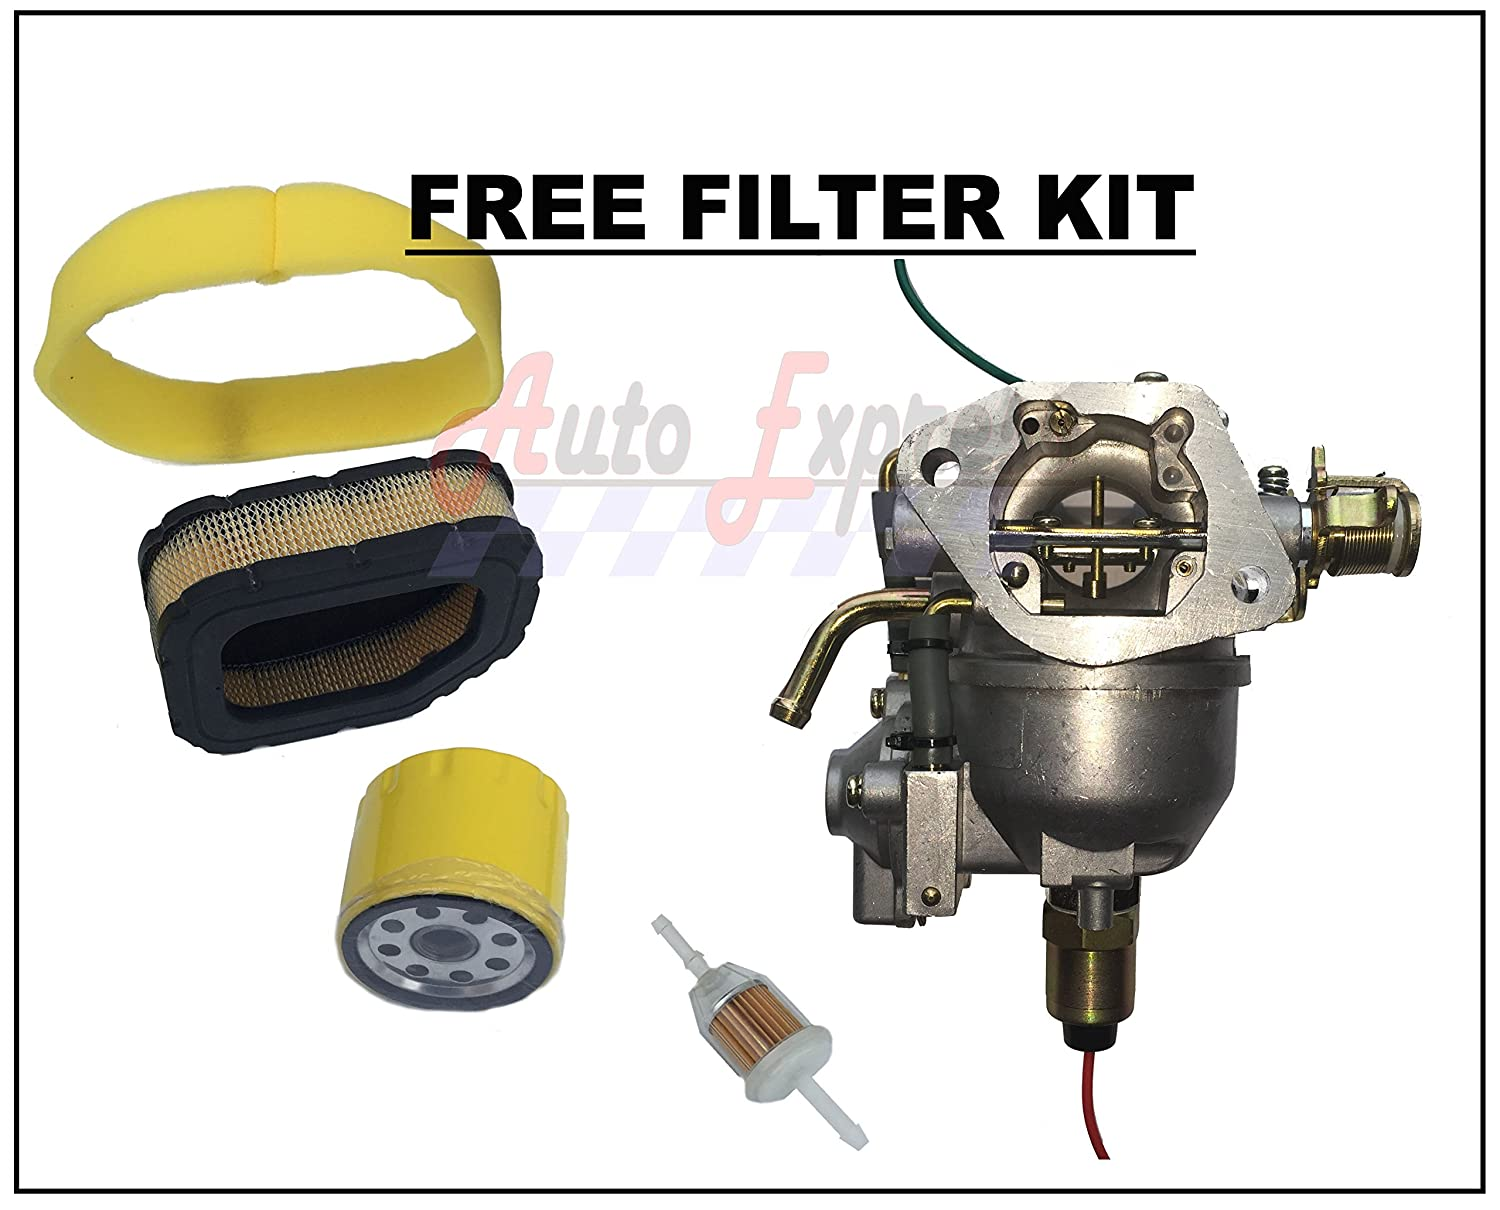 81WCl4RjBsL._SL1500_ amazon com carburetor fits john deere m655 m665 ztrak carb pump john deere m655 parts diagram at aneh.co